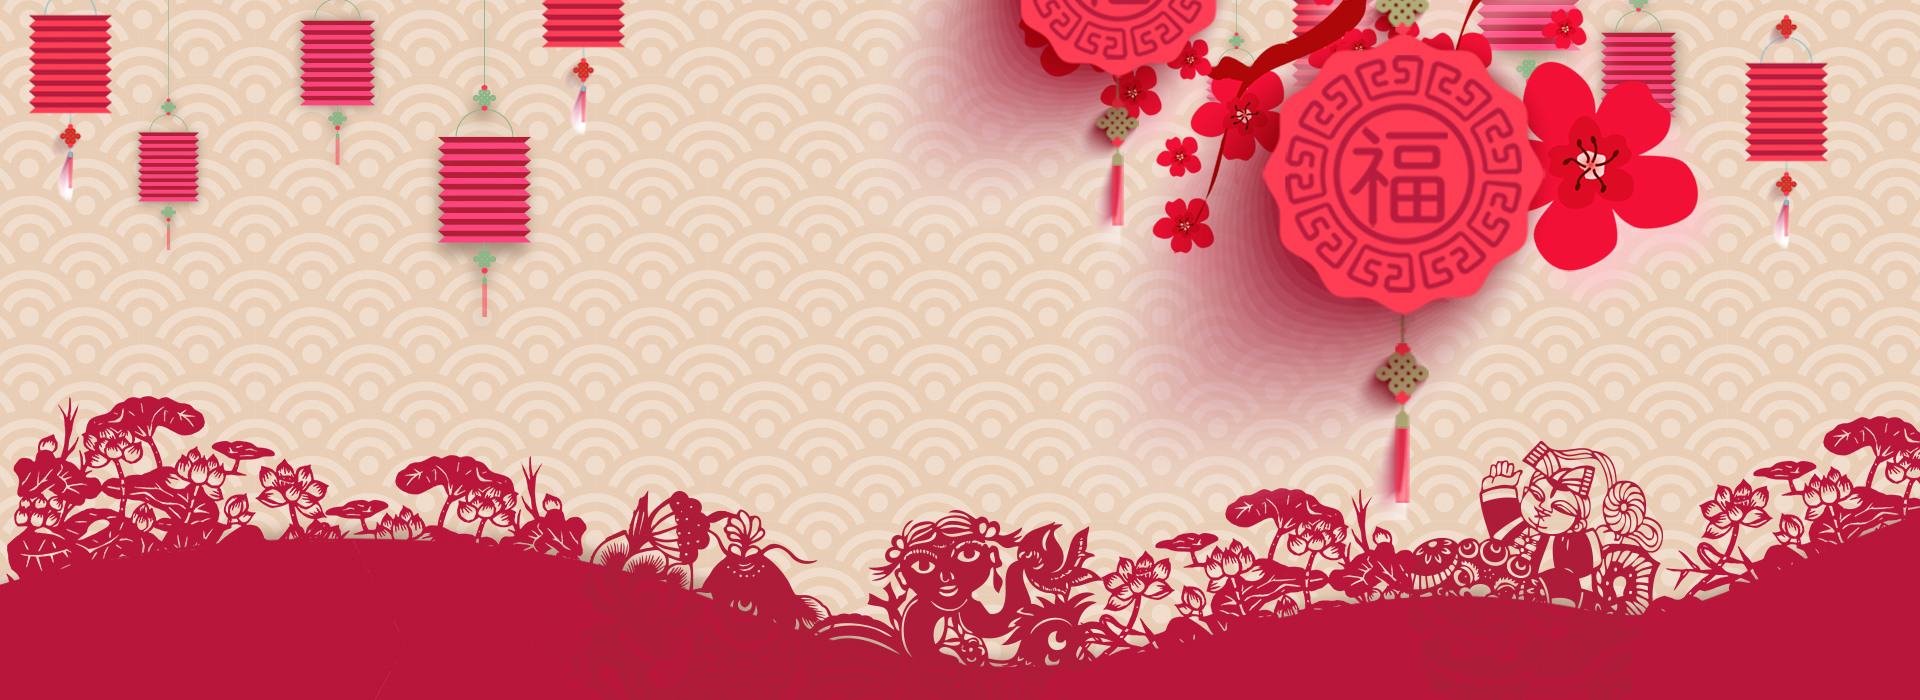 new years day chinese new year banner background  chinese